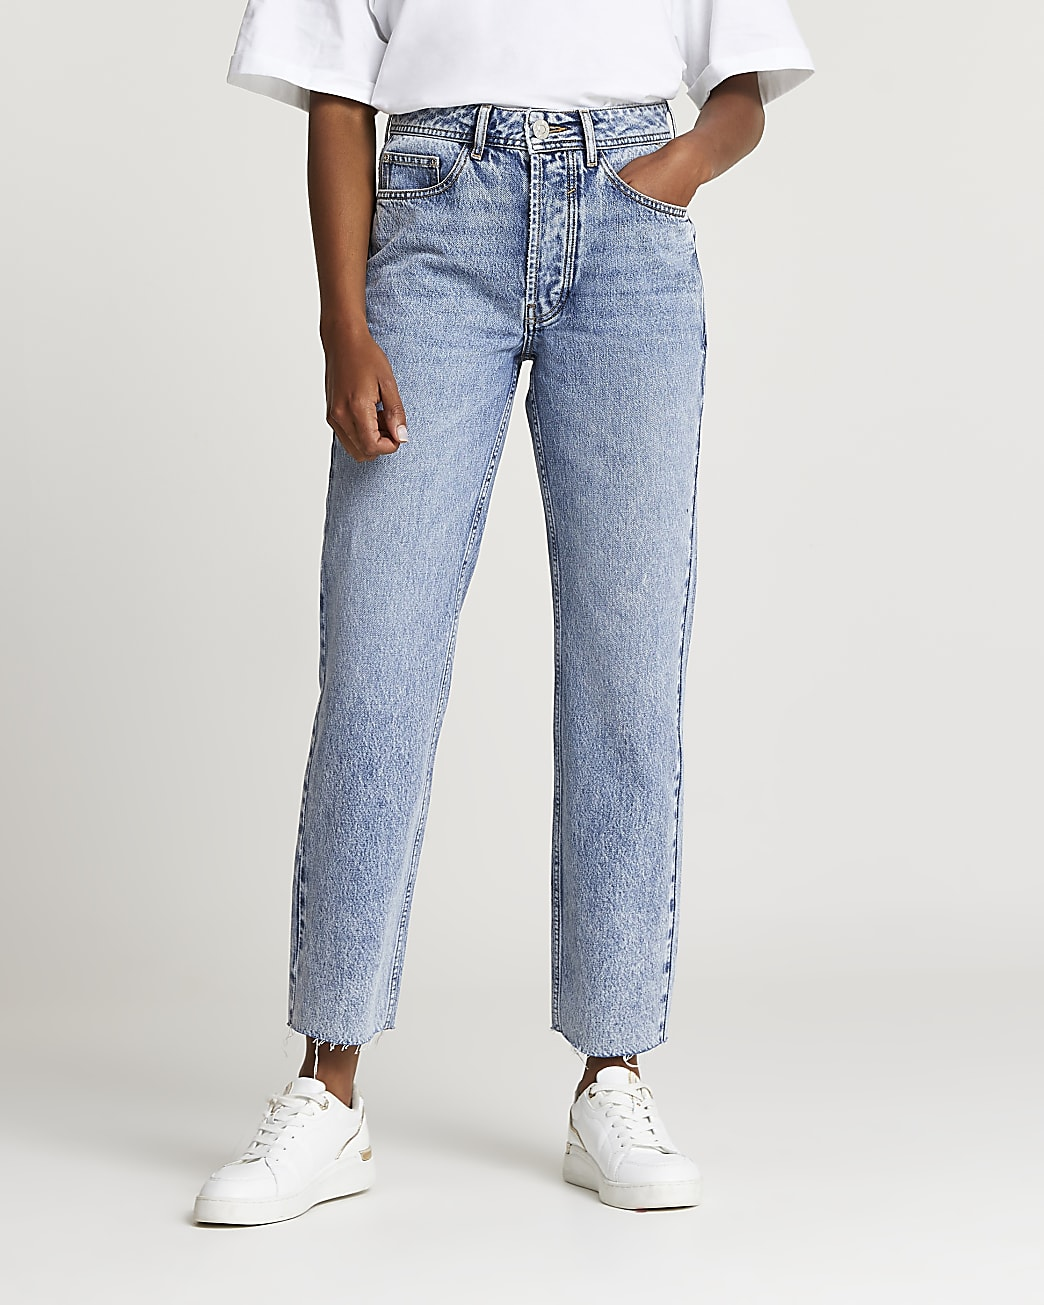 Blue mid rise straight jeans